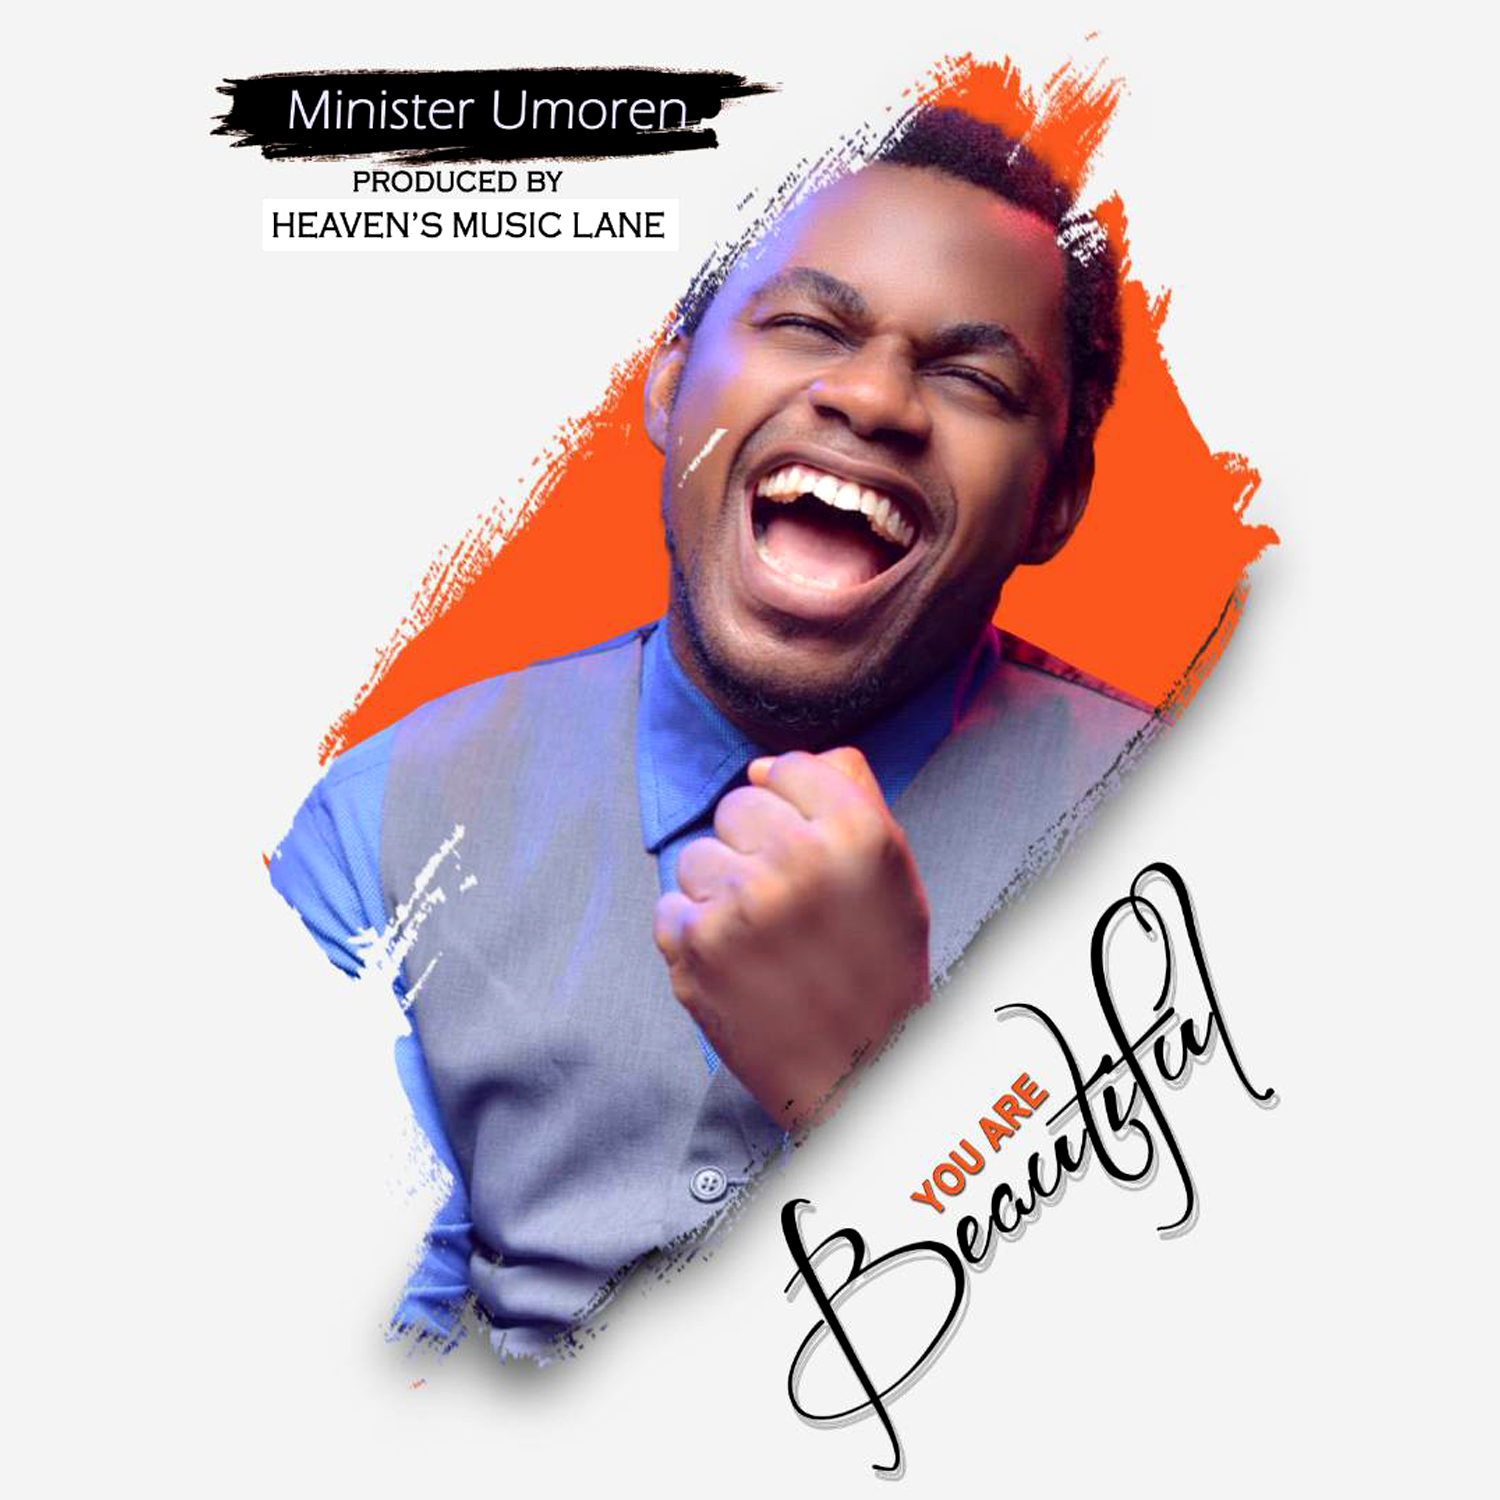 Music: You Are Beautiful ~ Minister Umoren [@Minister_Umoren]